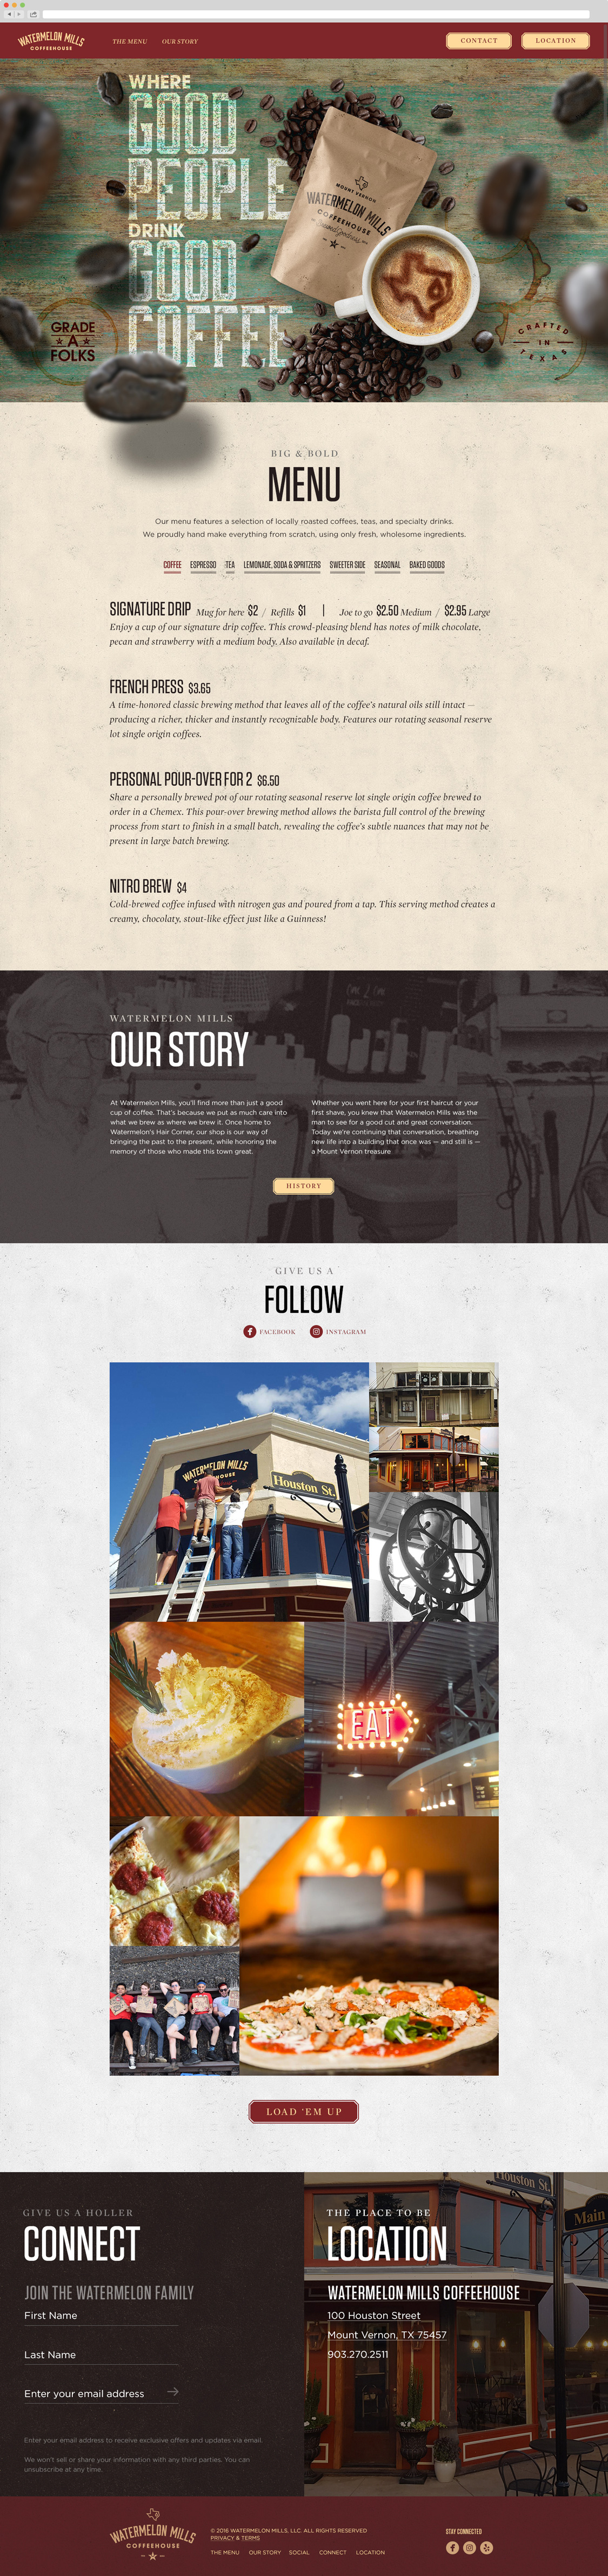 Watermelon Mills website landing page